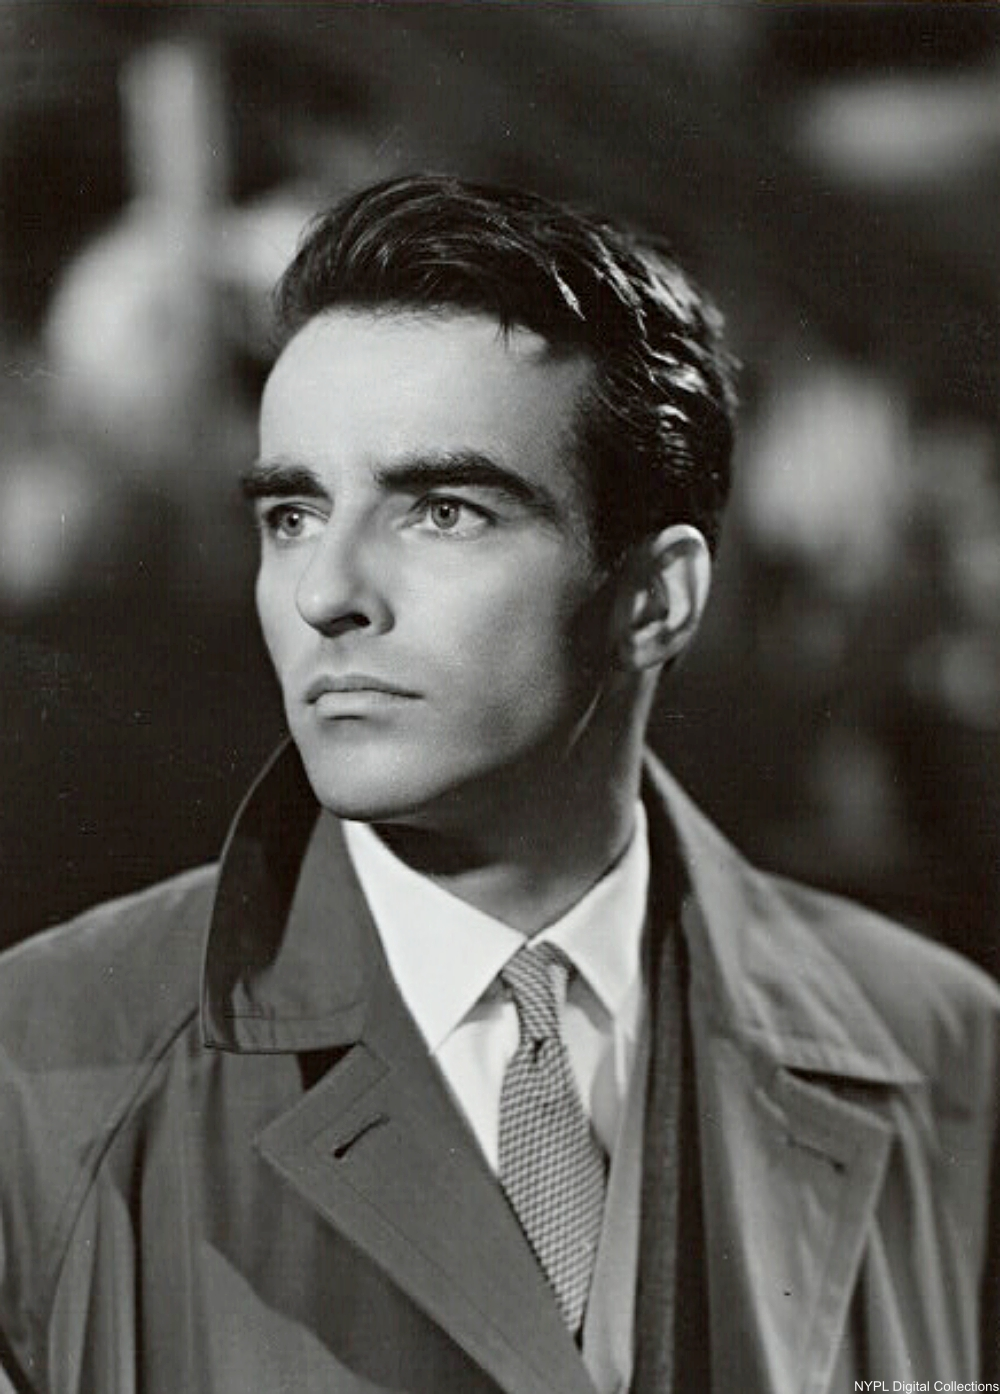 Our favorite leading men of the old movies